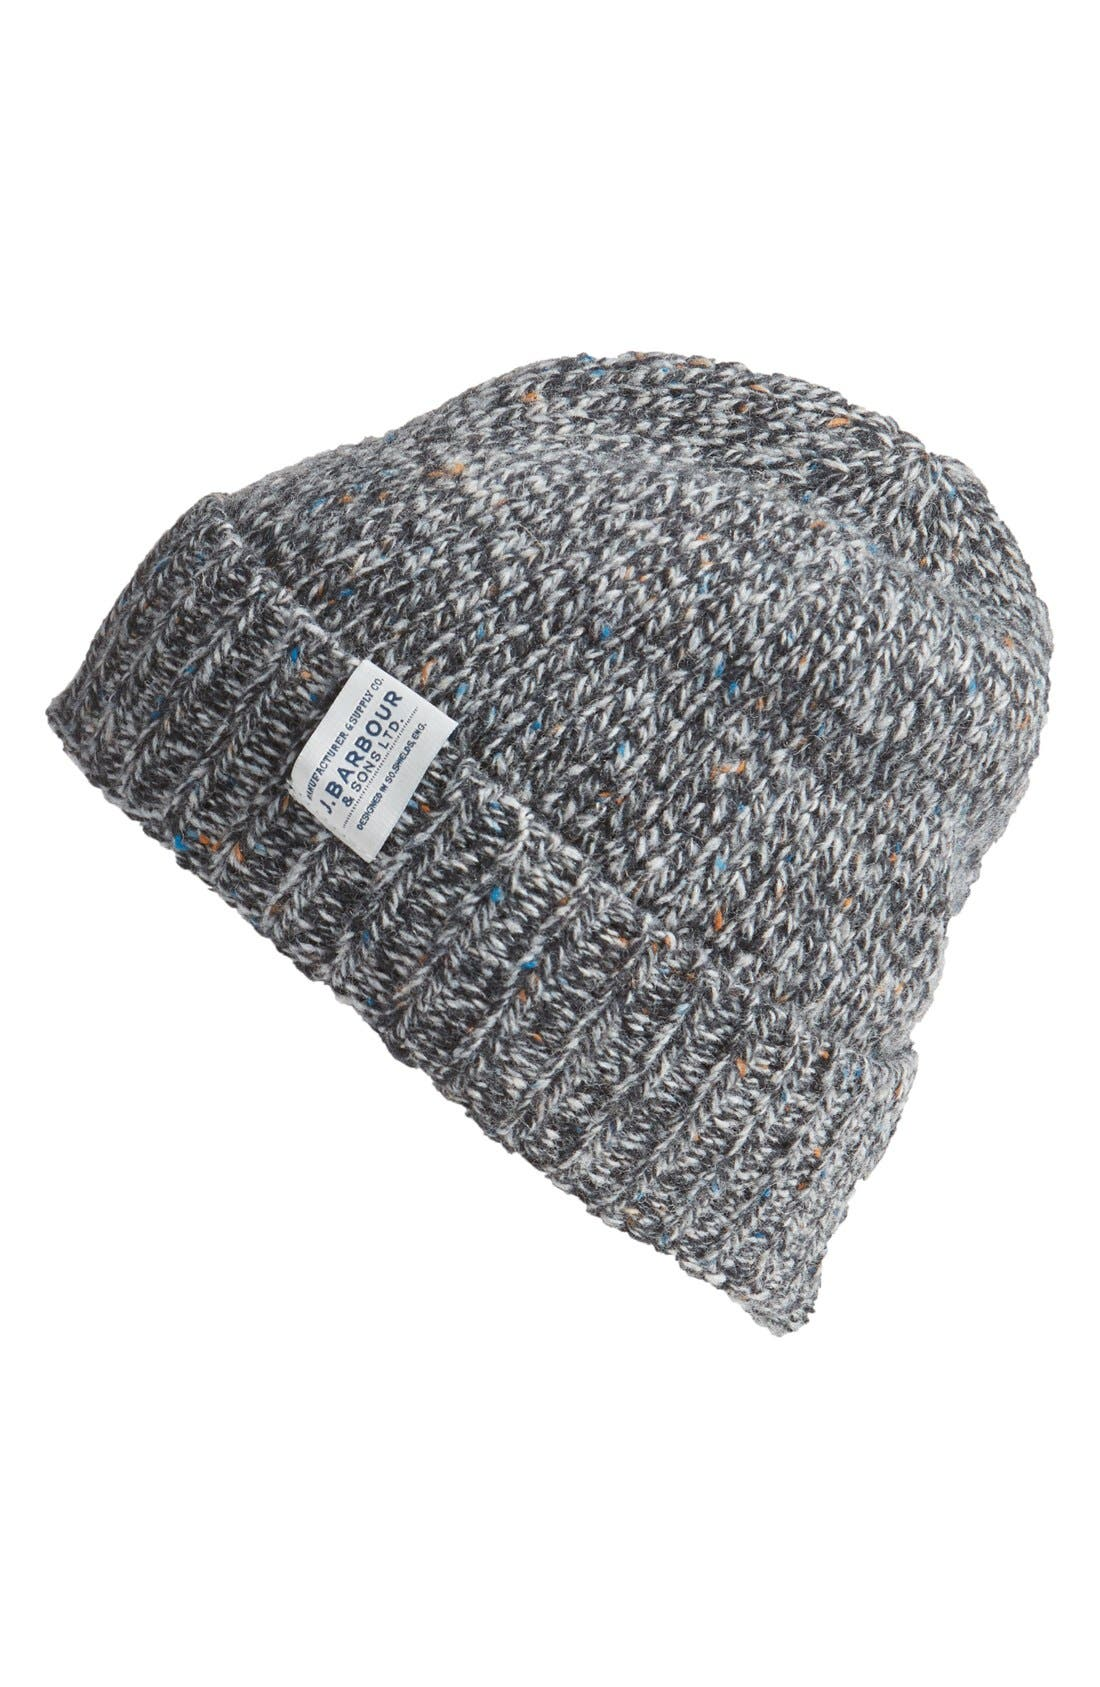 Alternate Image 1 Selected - Barbour Whitfield Beanie